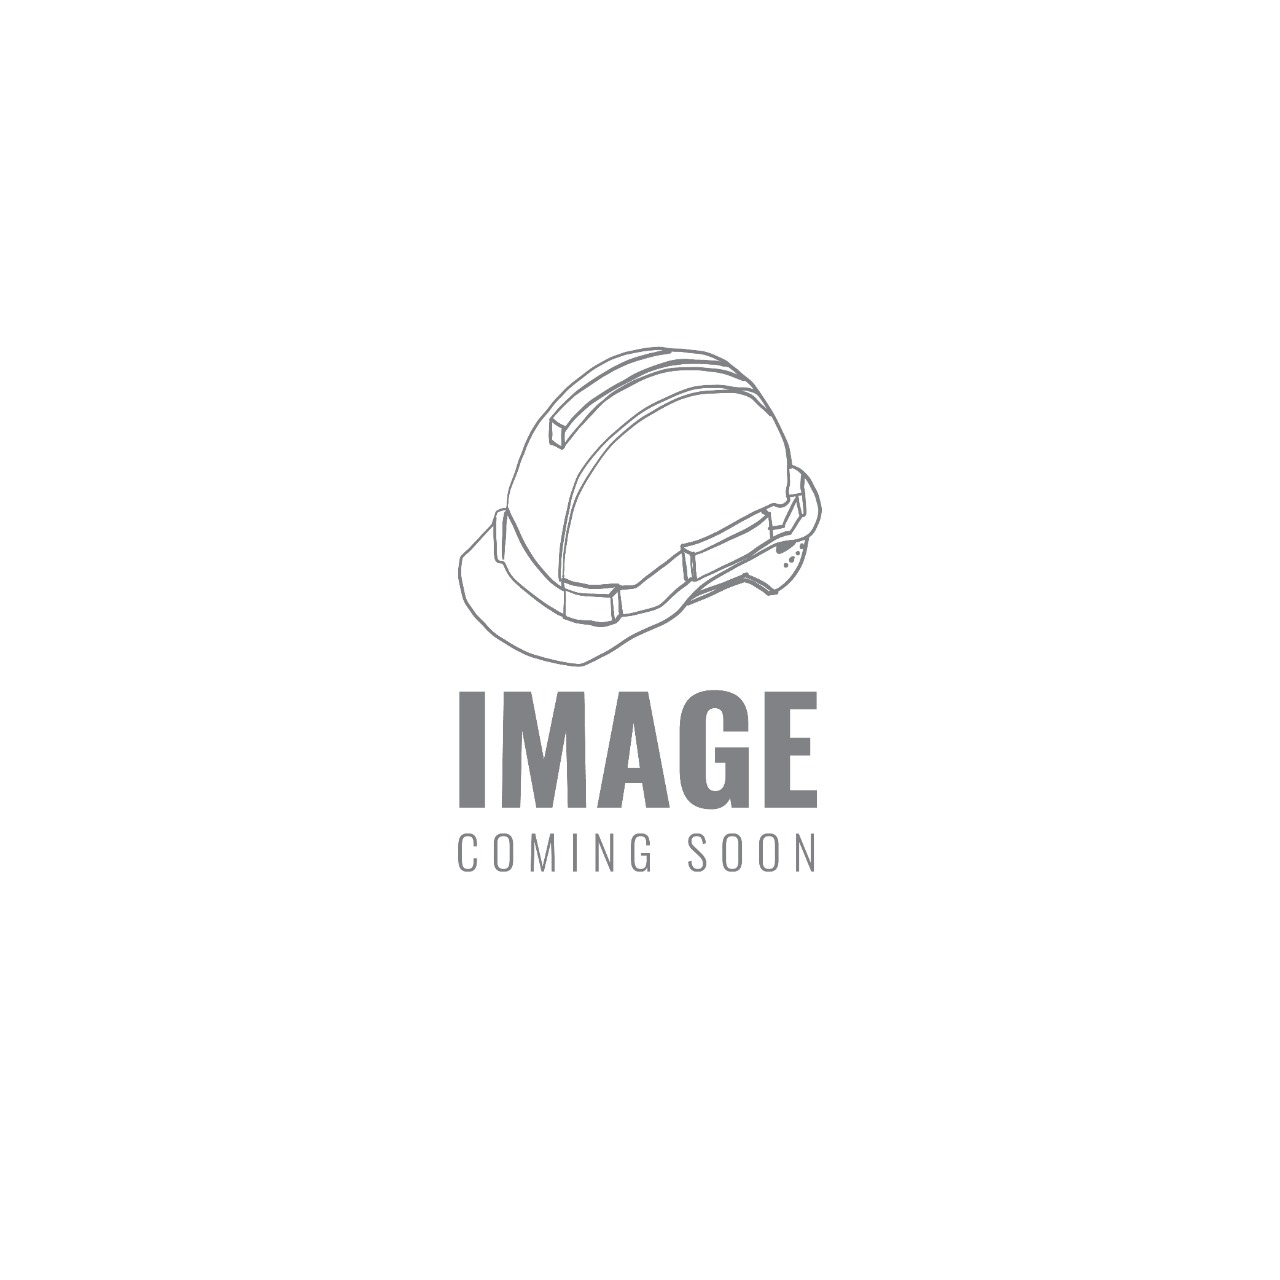 CAT 4 Arc Flash Full Suit Set, with Cooling Hood System and LED light, 41 cal/cm2